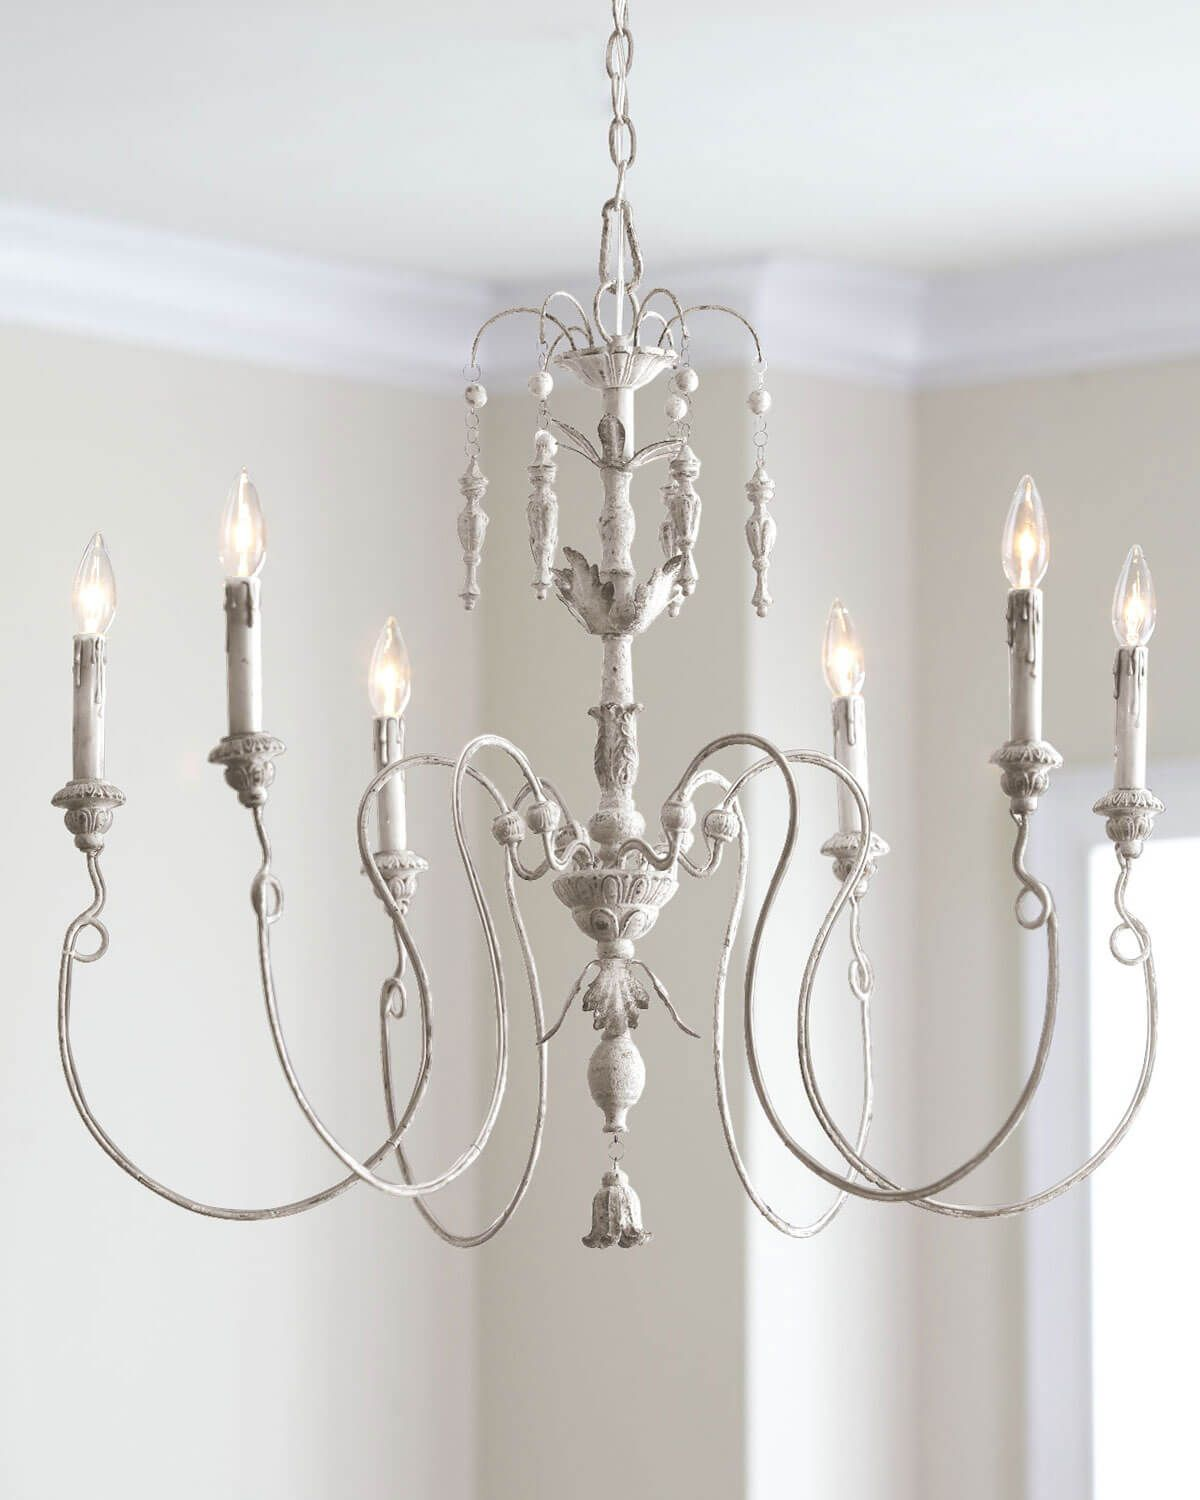 French chandelier ideas